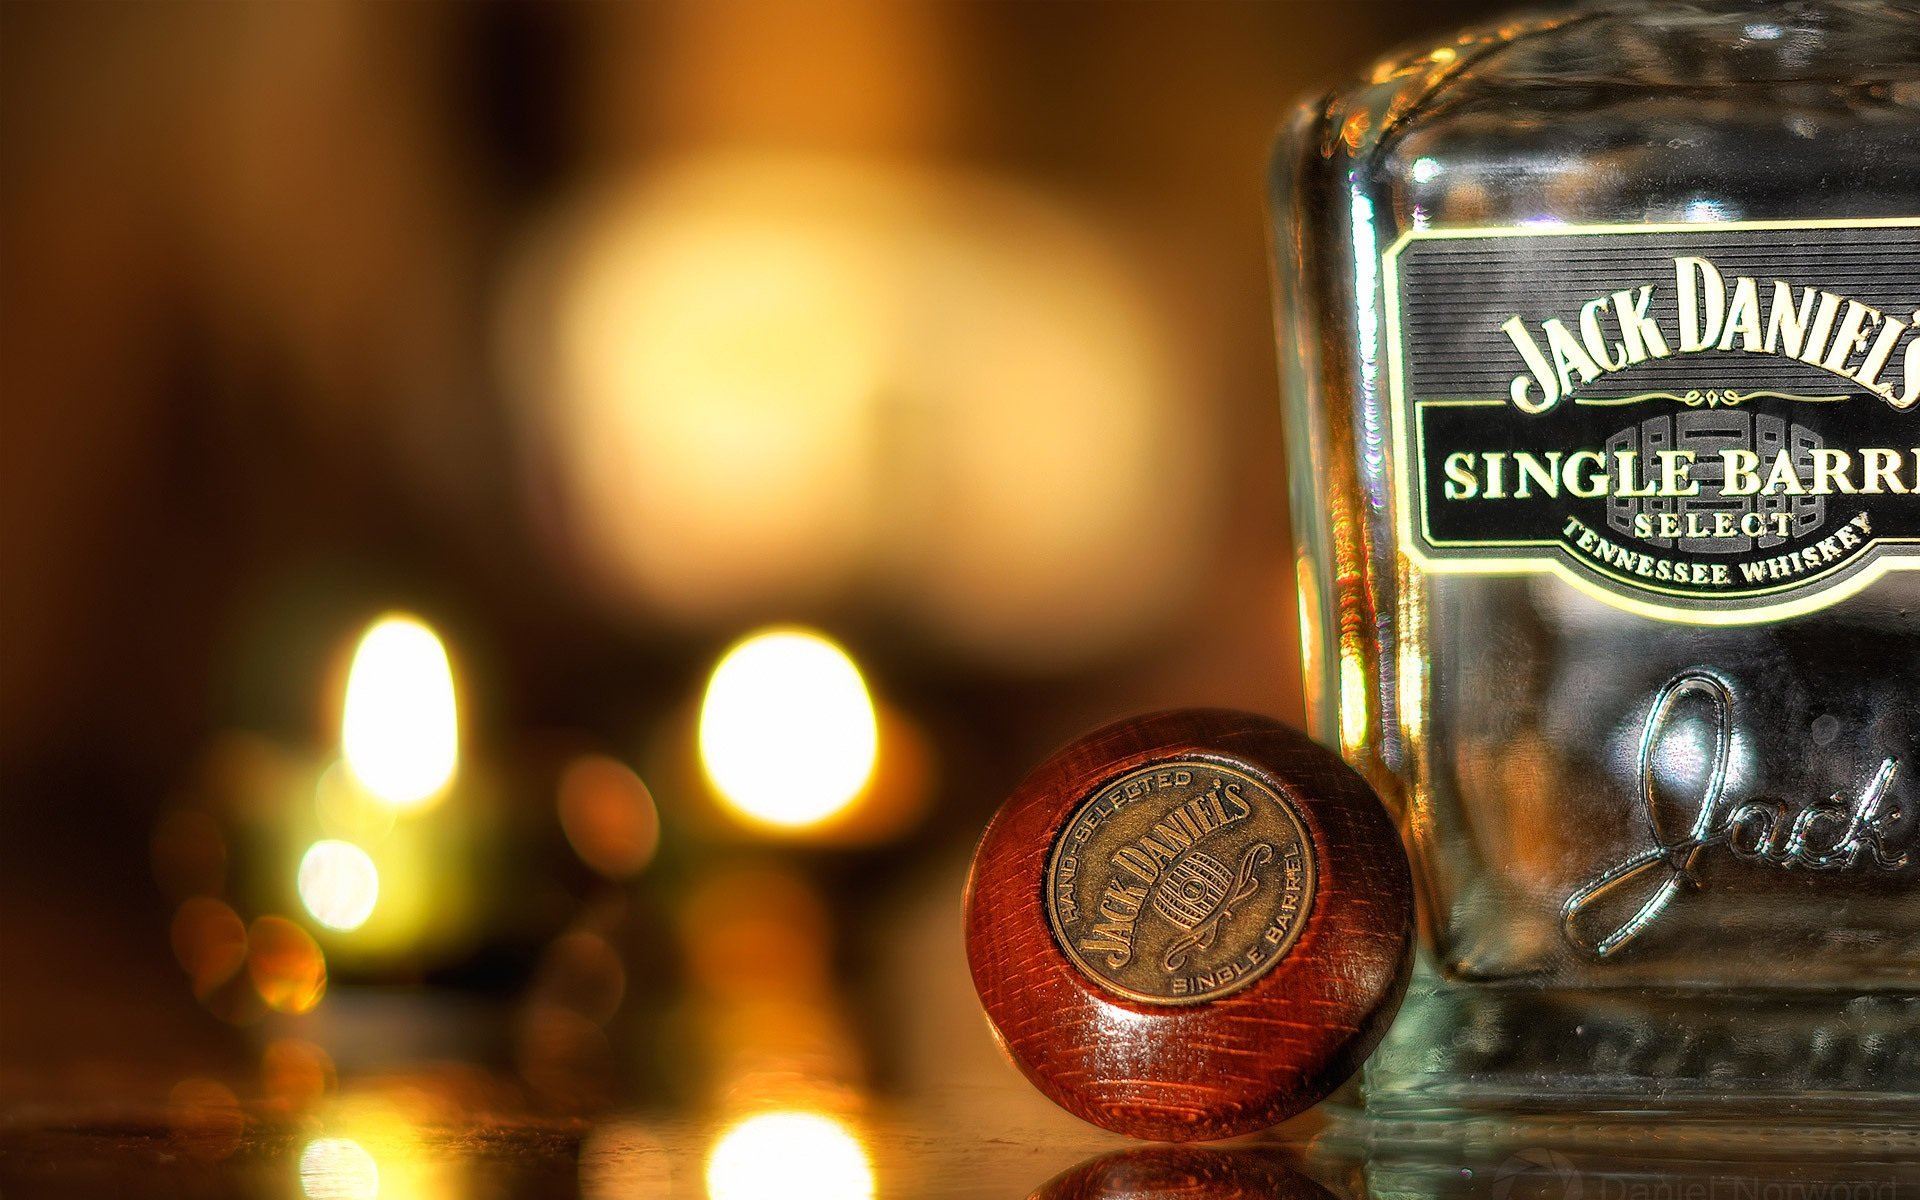 Whisky Full Hd Wallpaper And Background: Whisky HD Wallpaper